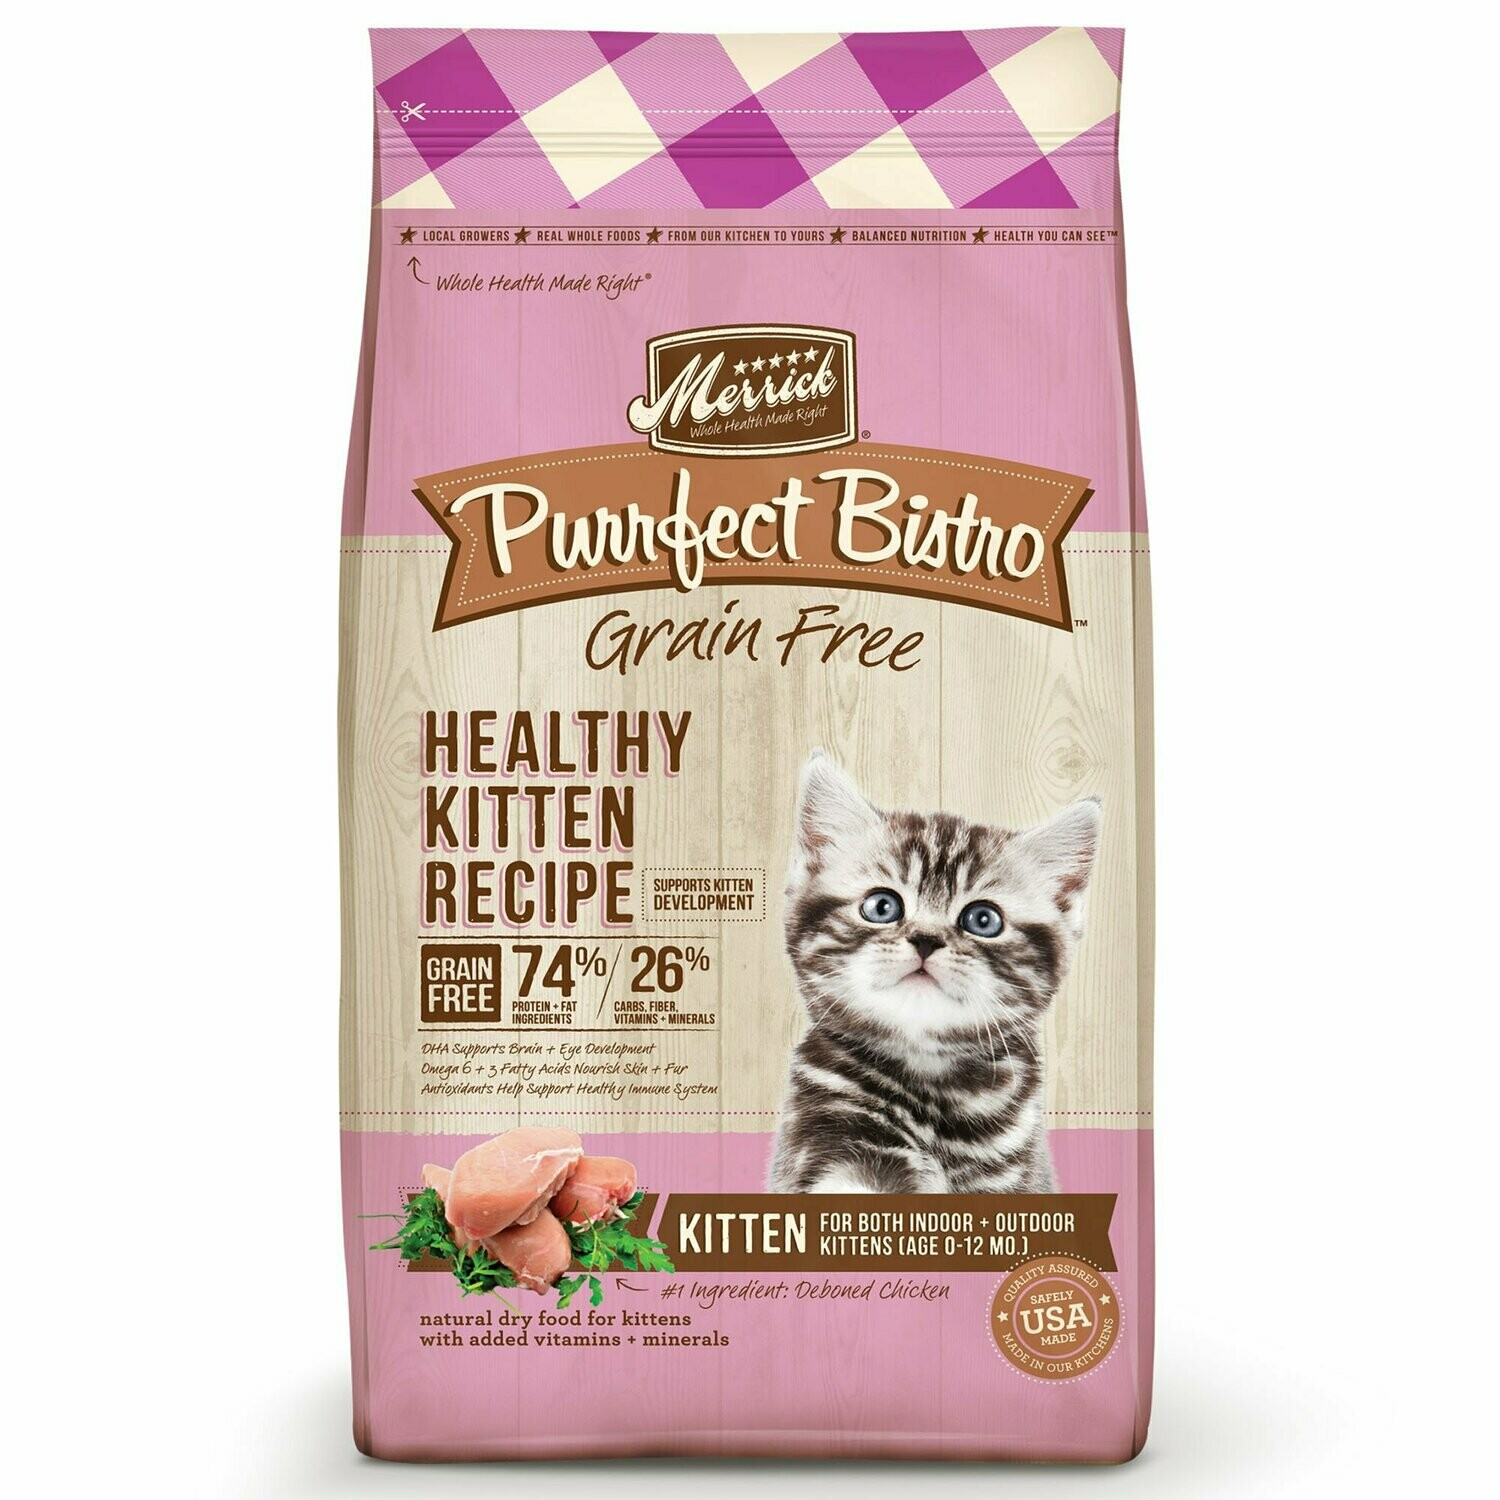 Merrick Purrfect Bistro Grain-Free Healthy Kitten Recipe Dry Cat Food, 7 lb (1/20) (A.N1)